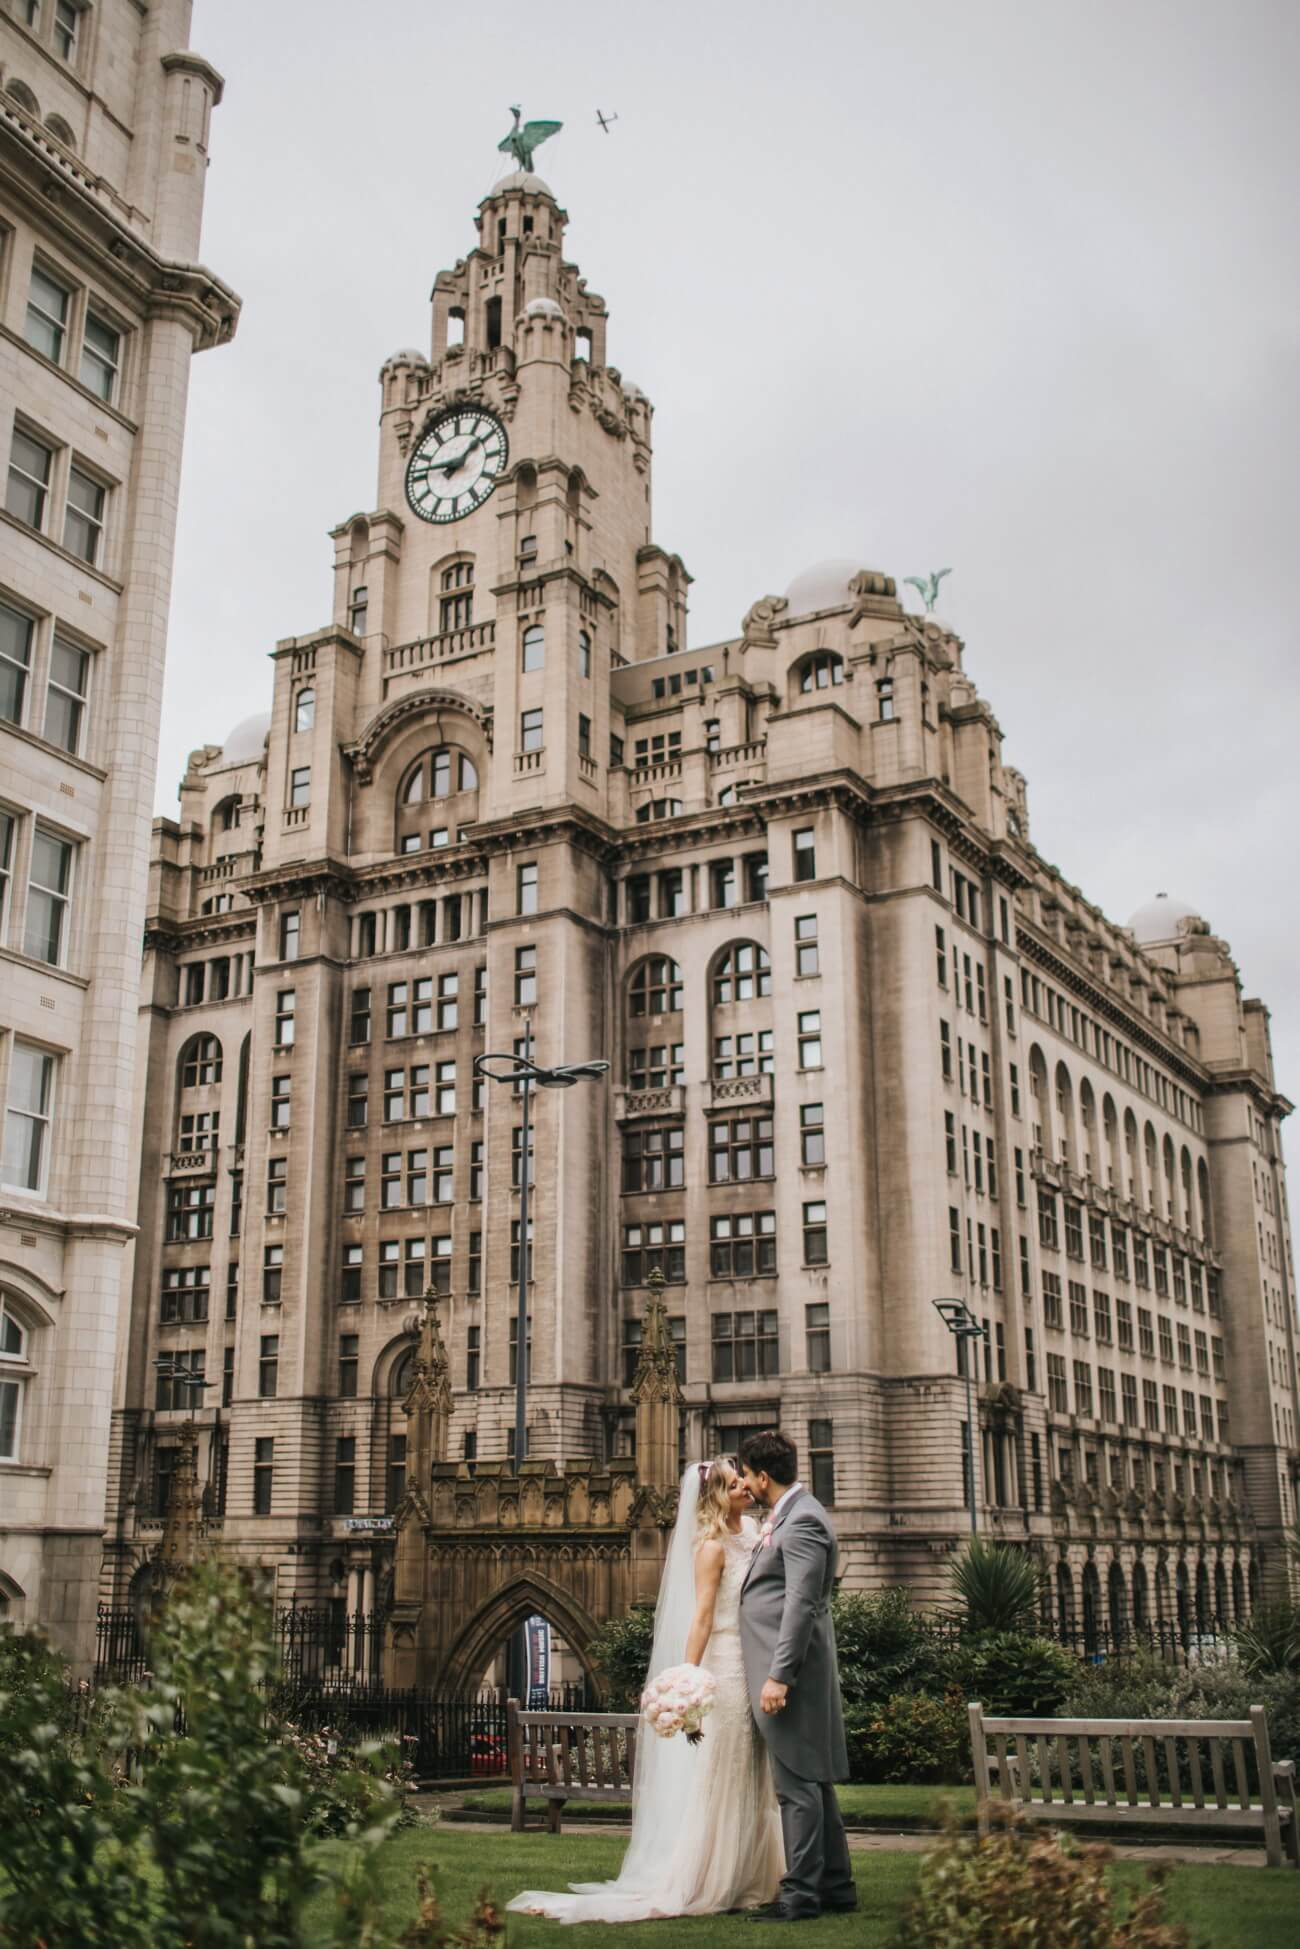 Liver building wedding photographer liverpool wedding photography